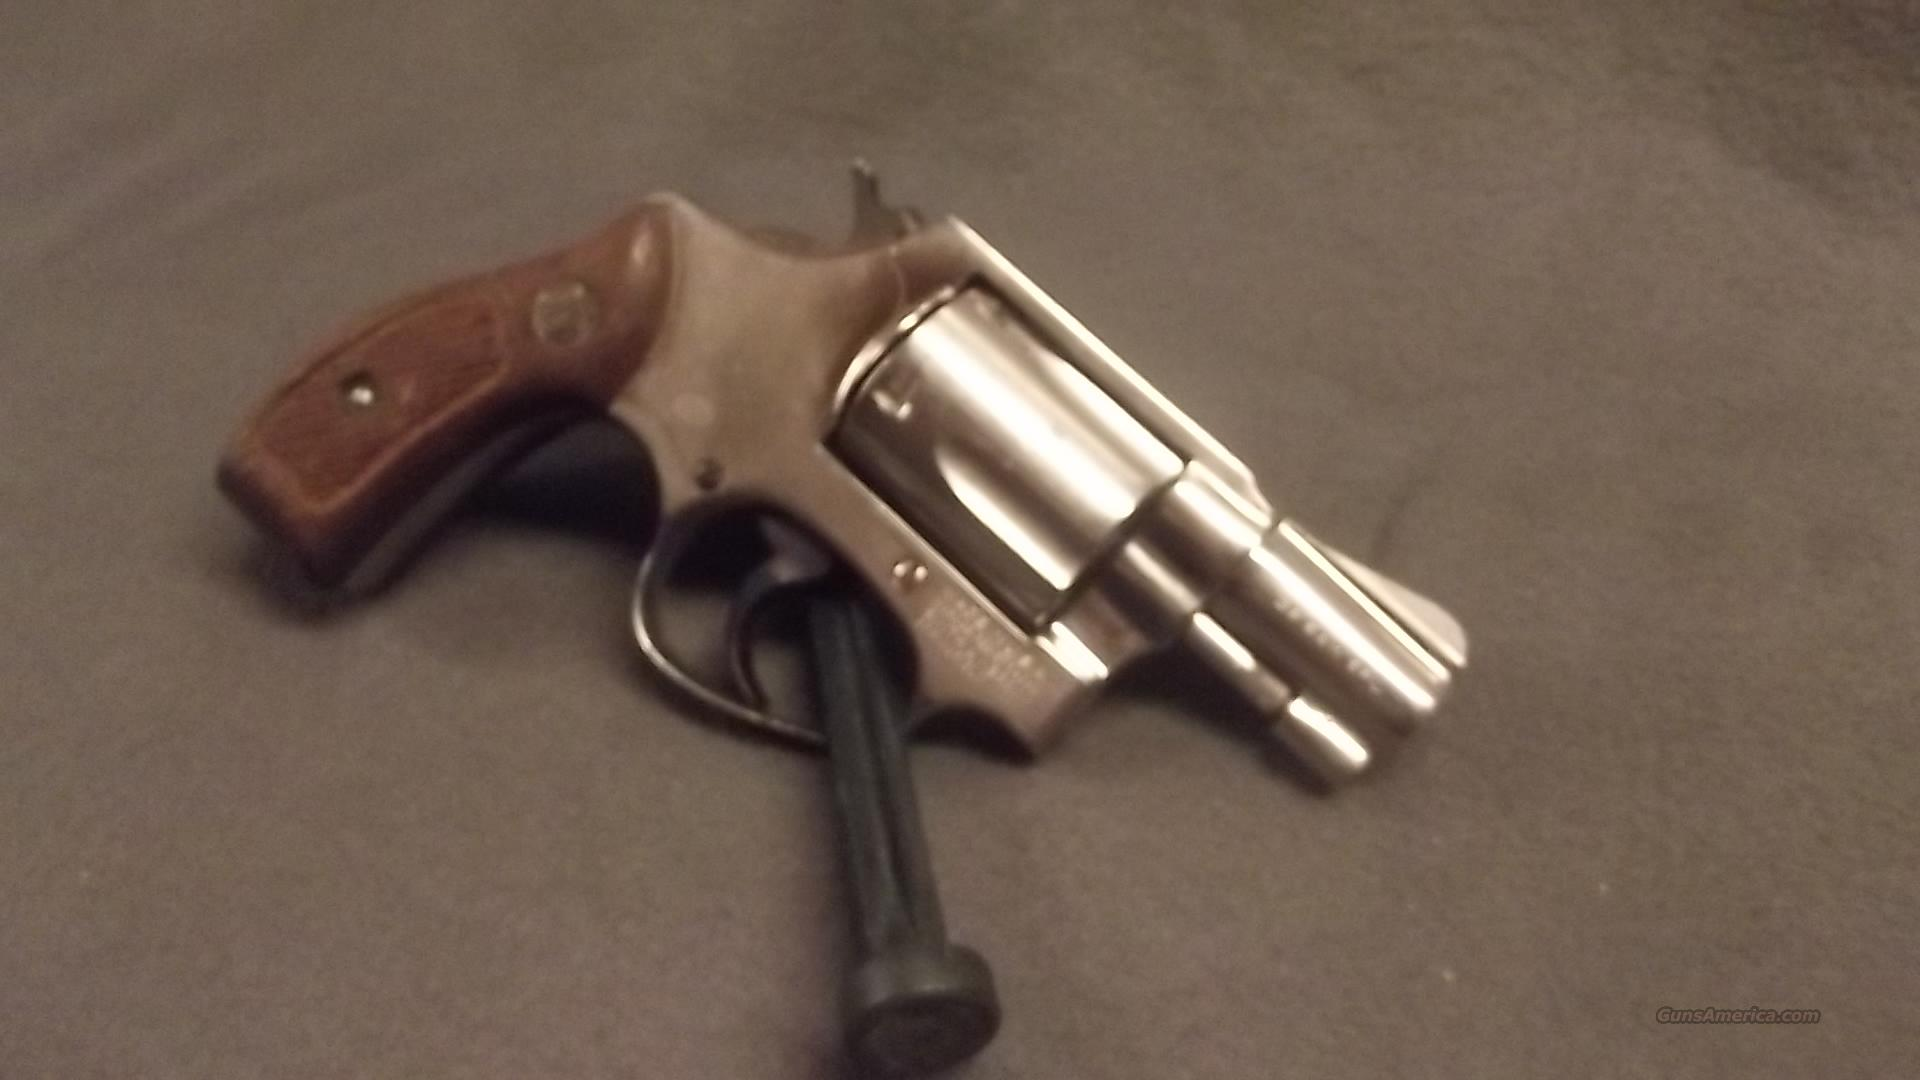 "SMITH  WESSON  36   NO DASH   38 SPECIAL  ""ROUND BUTT""  Guns > Pistols > Smith & Wesson Revolvers > Pocket Pistols"